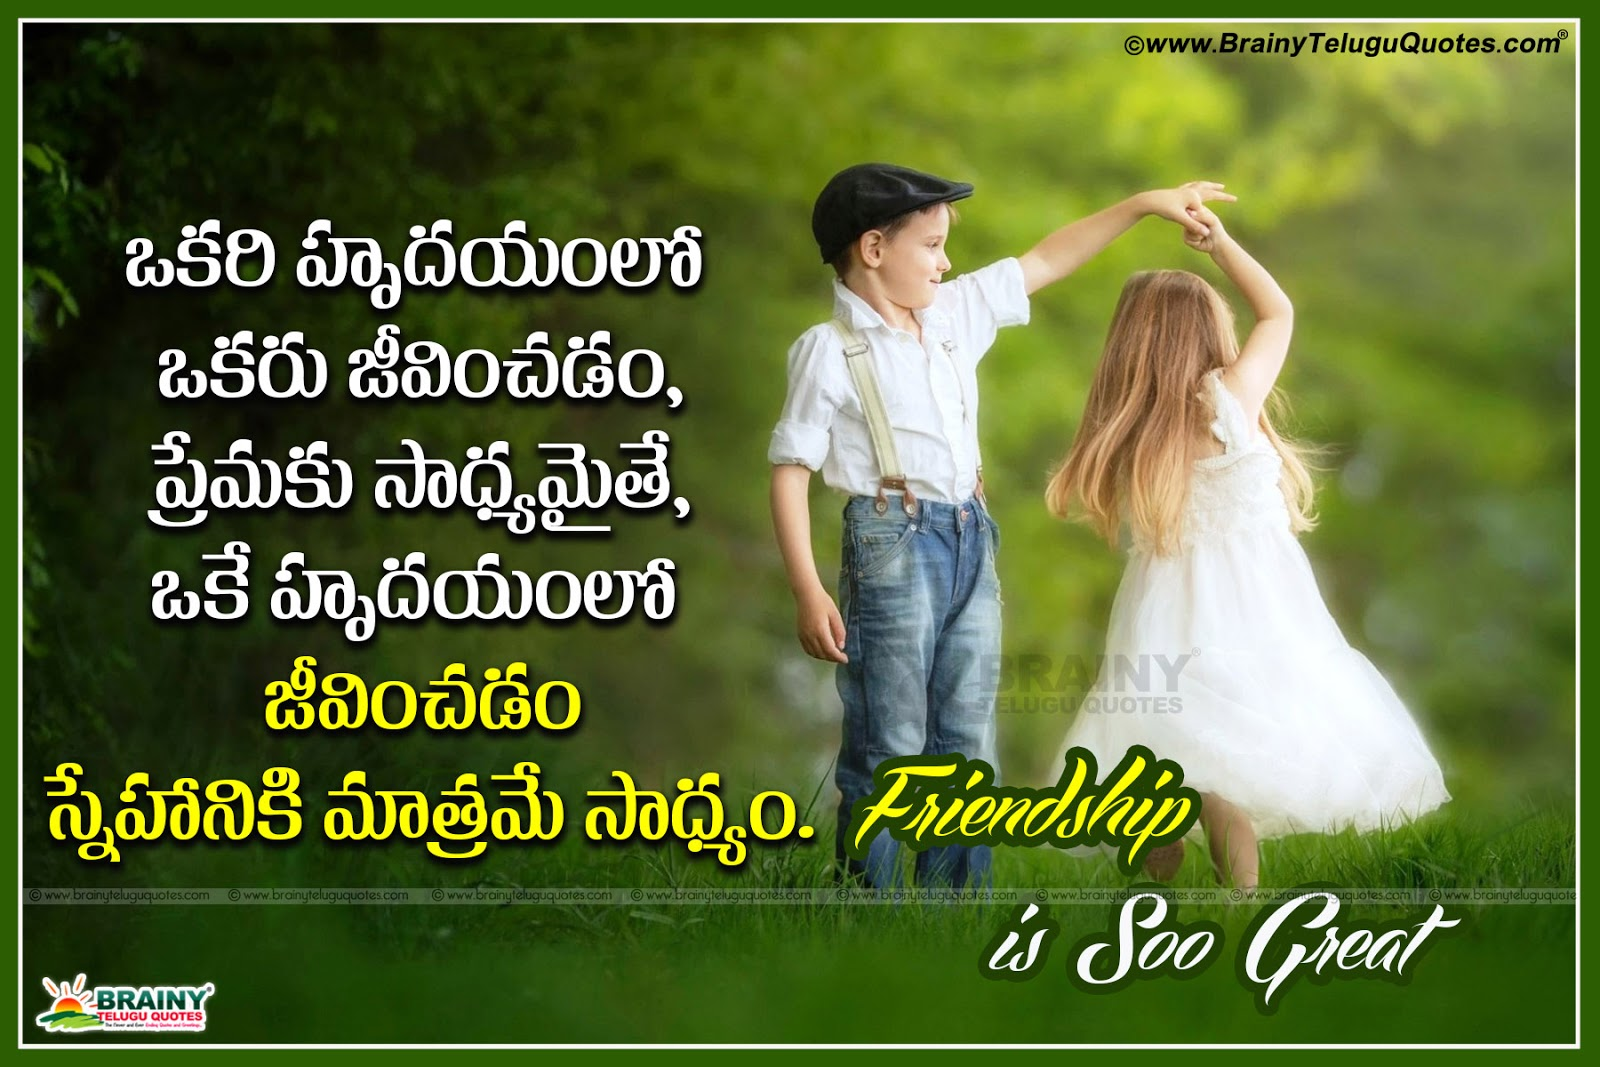 Great Quotes About Friendship Best Friendship Quotes In Two Lines Telugu Good Thoughts